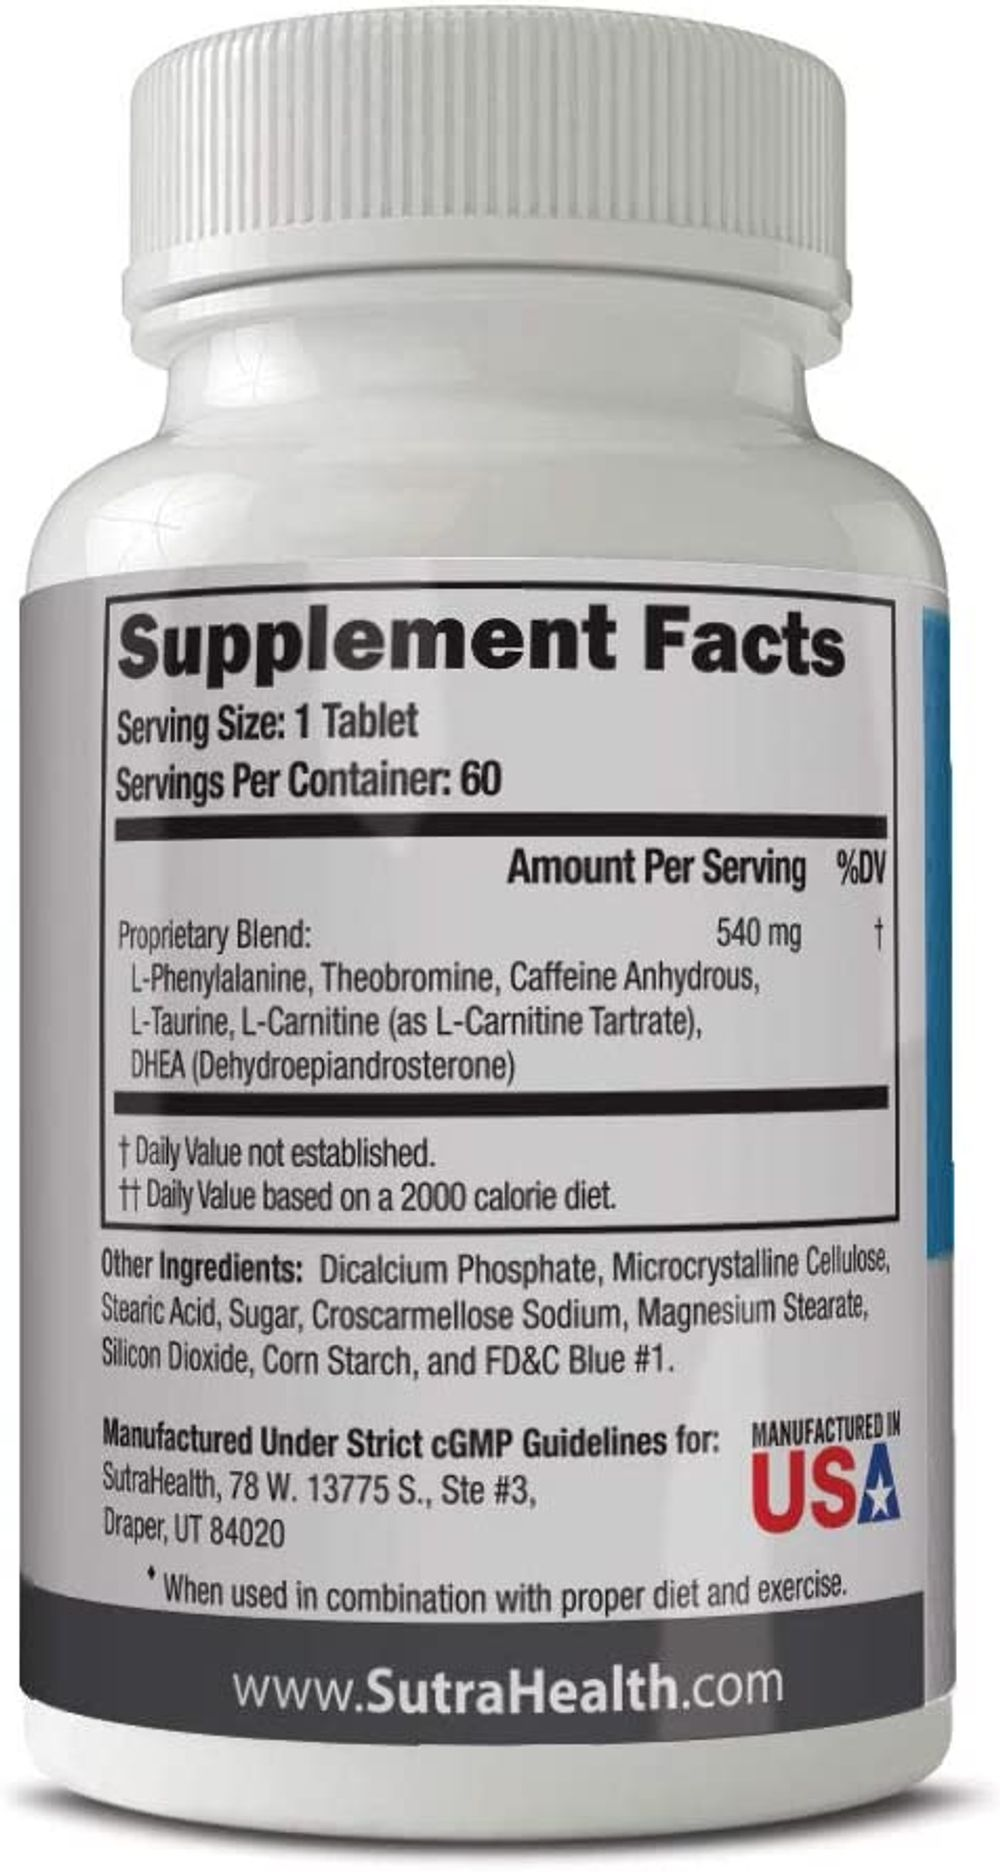 PhenAprin Diet Pills – Best Appetite Suppressant: Weight Loss and Energy Boost for Metabolism – Optimal Fat Burner Supplement; Helps Curb and Control Appetite, Promotes Mood & Brain Function